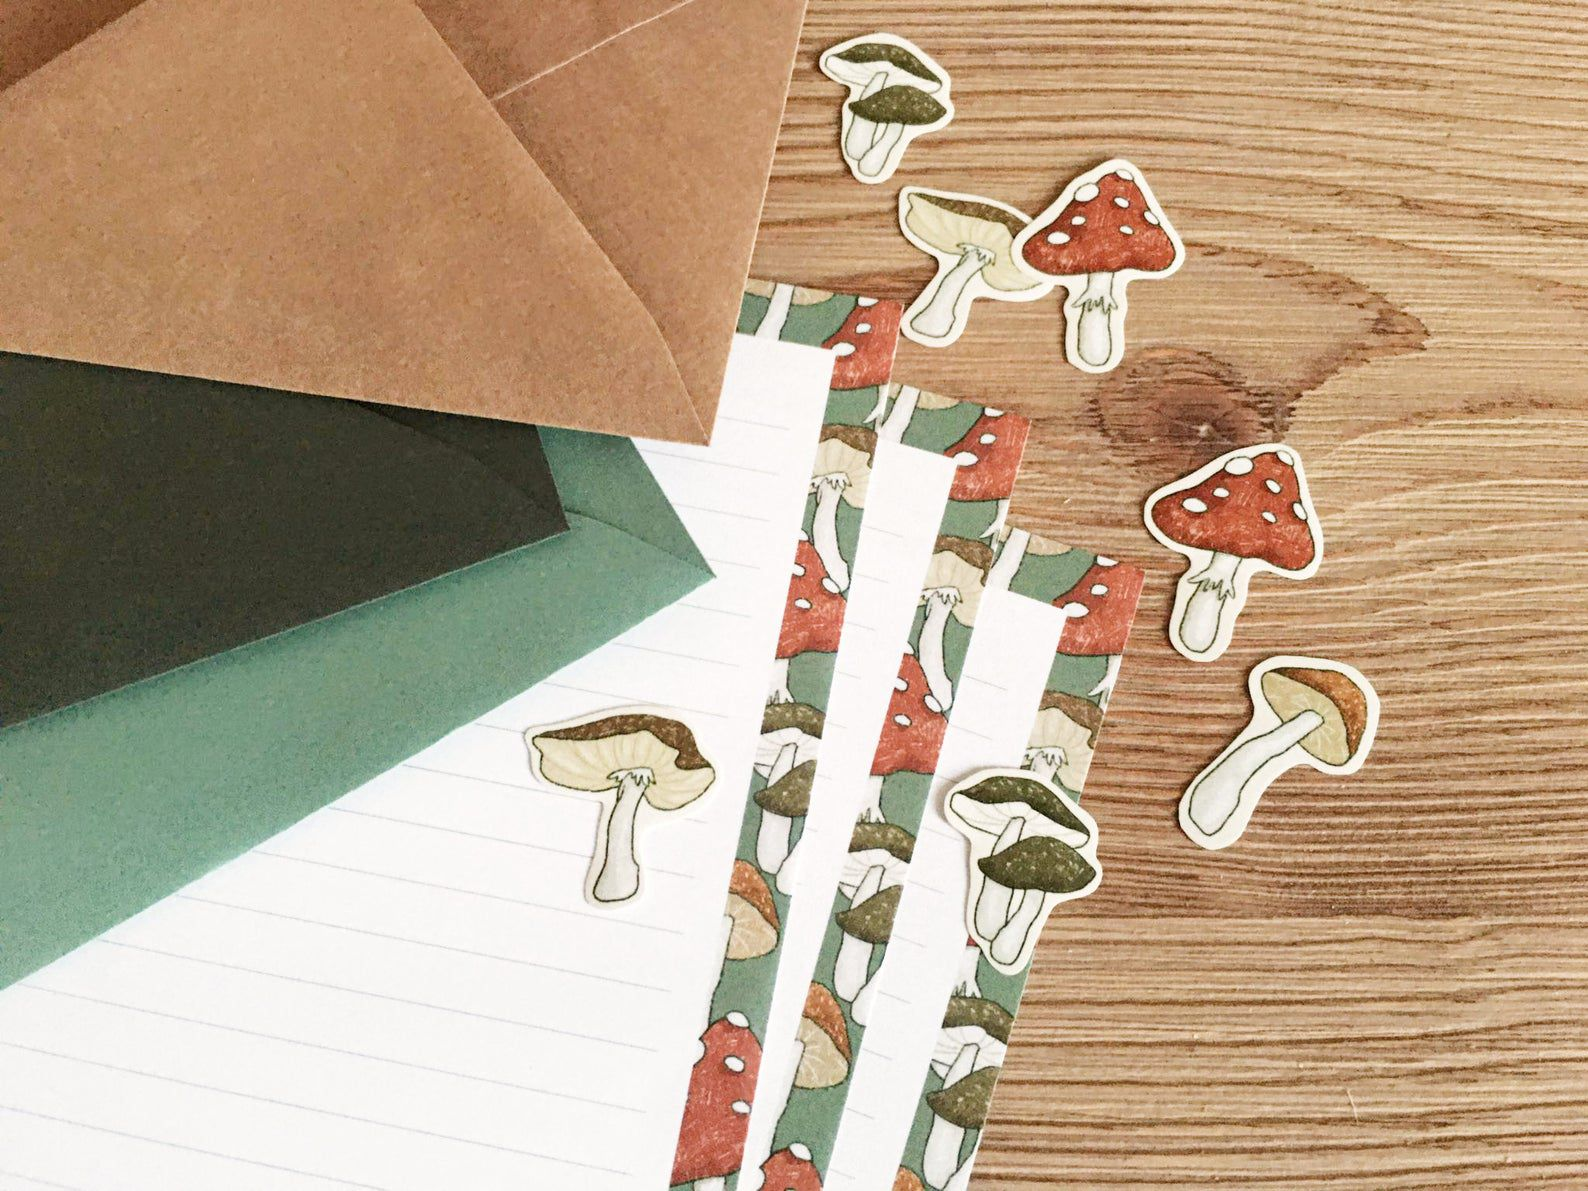 Image of mushroom-themed paper and stickers.